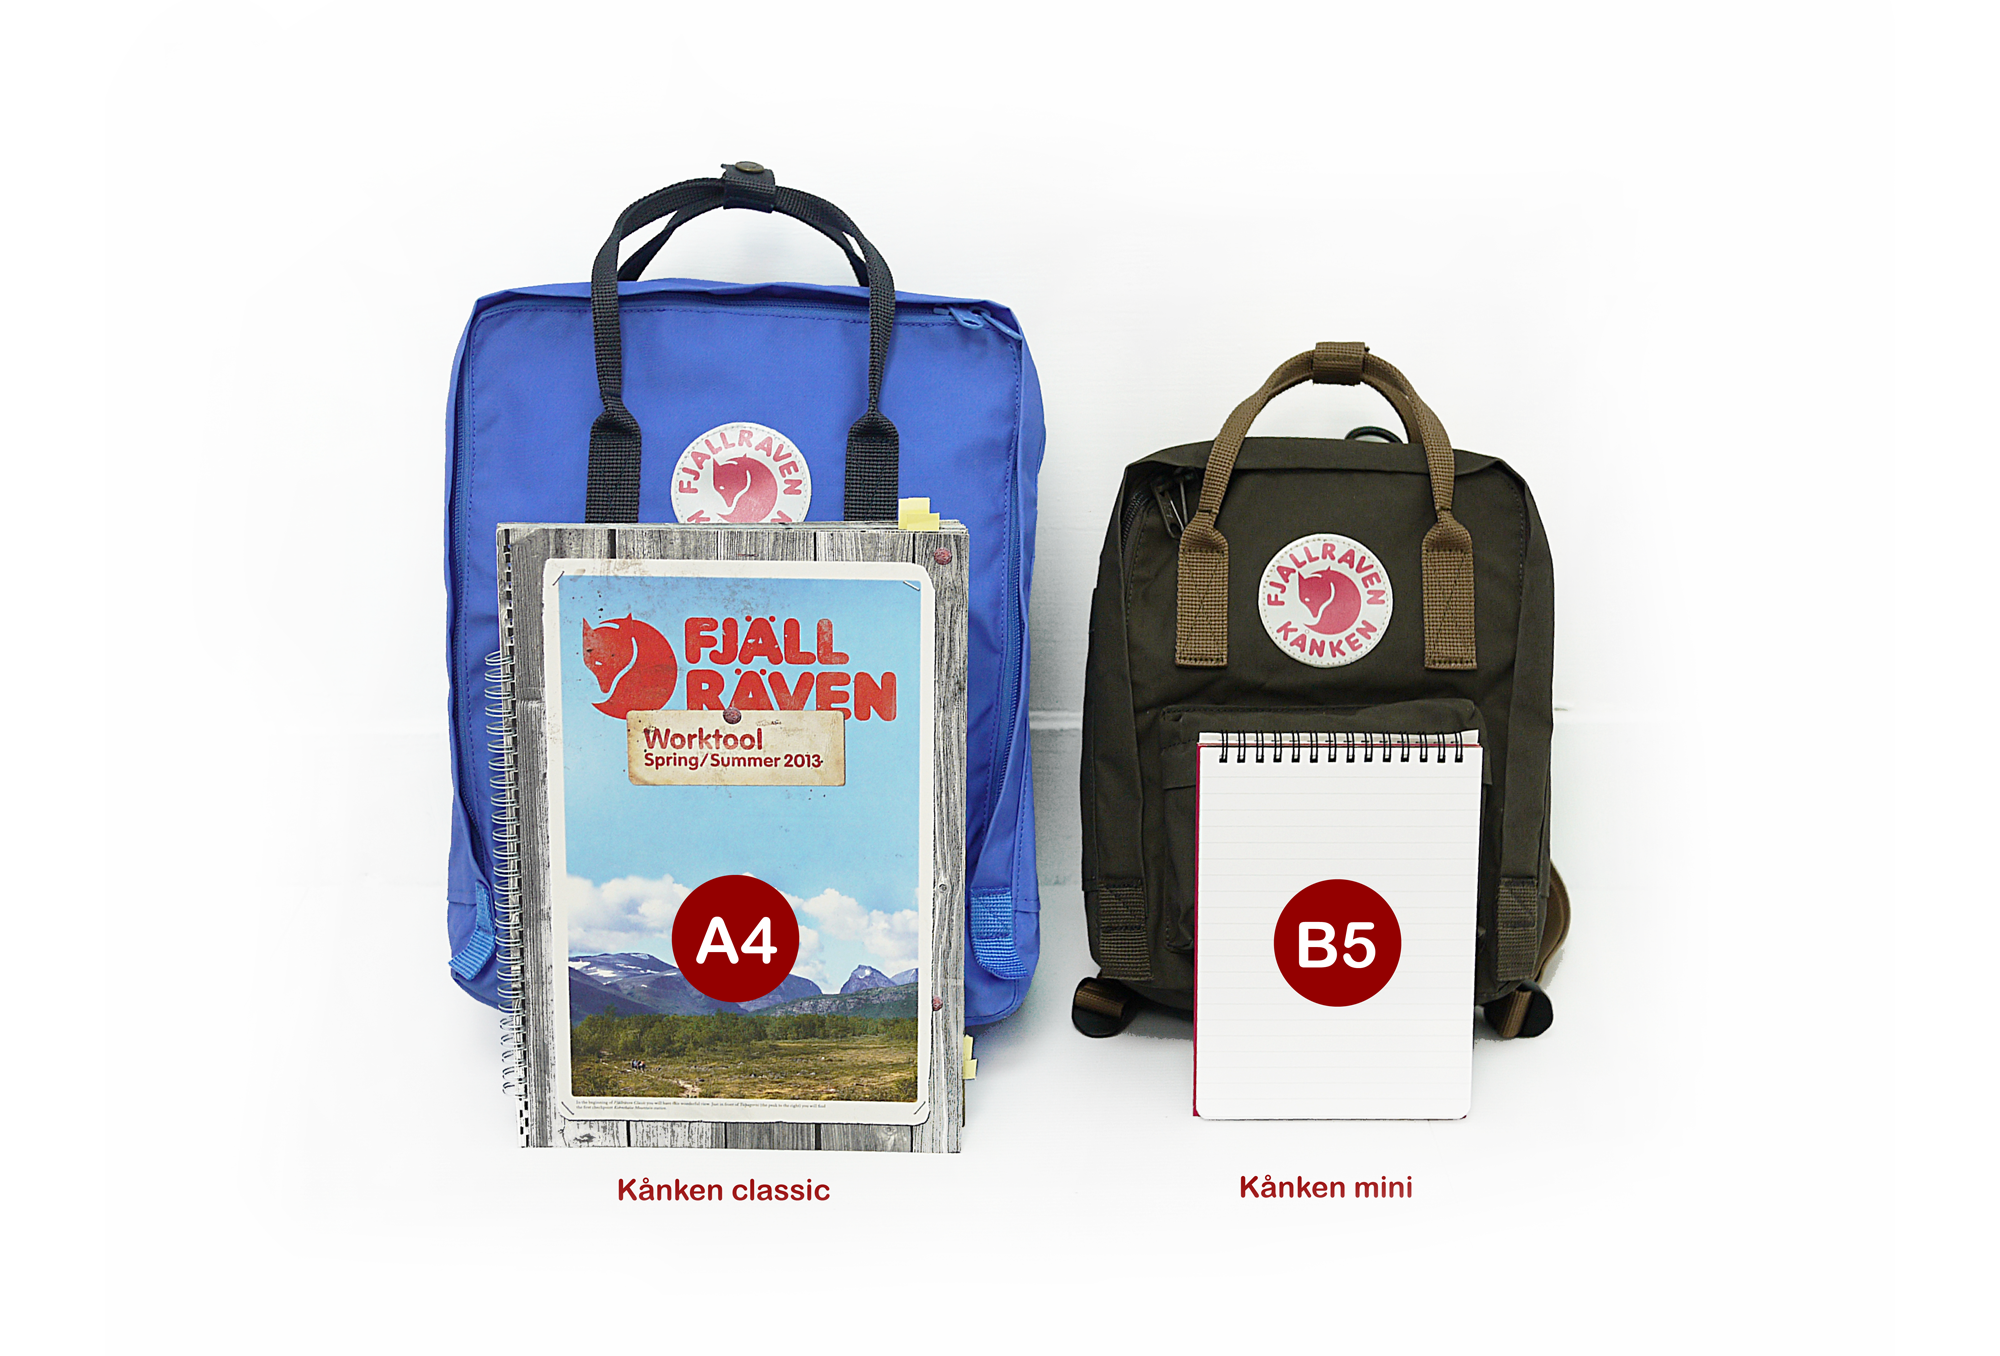 【Fjallraven Kanken 】Kånken Classic 550-326 Black & Ox Red 黑公牛紅 5